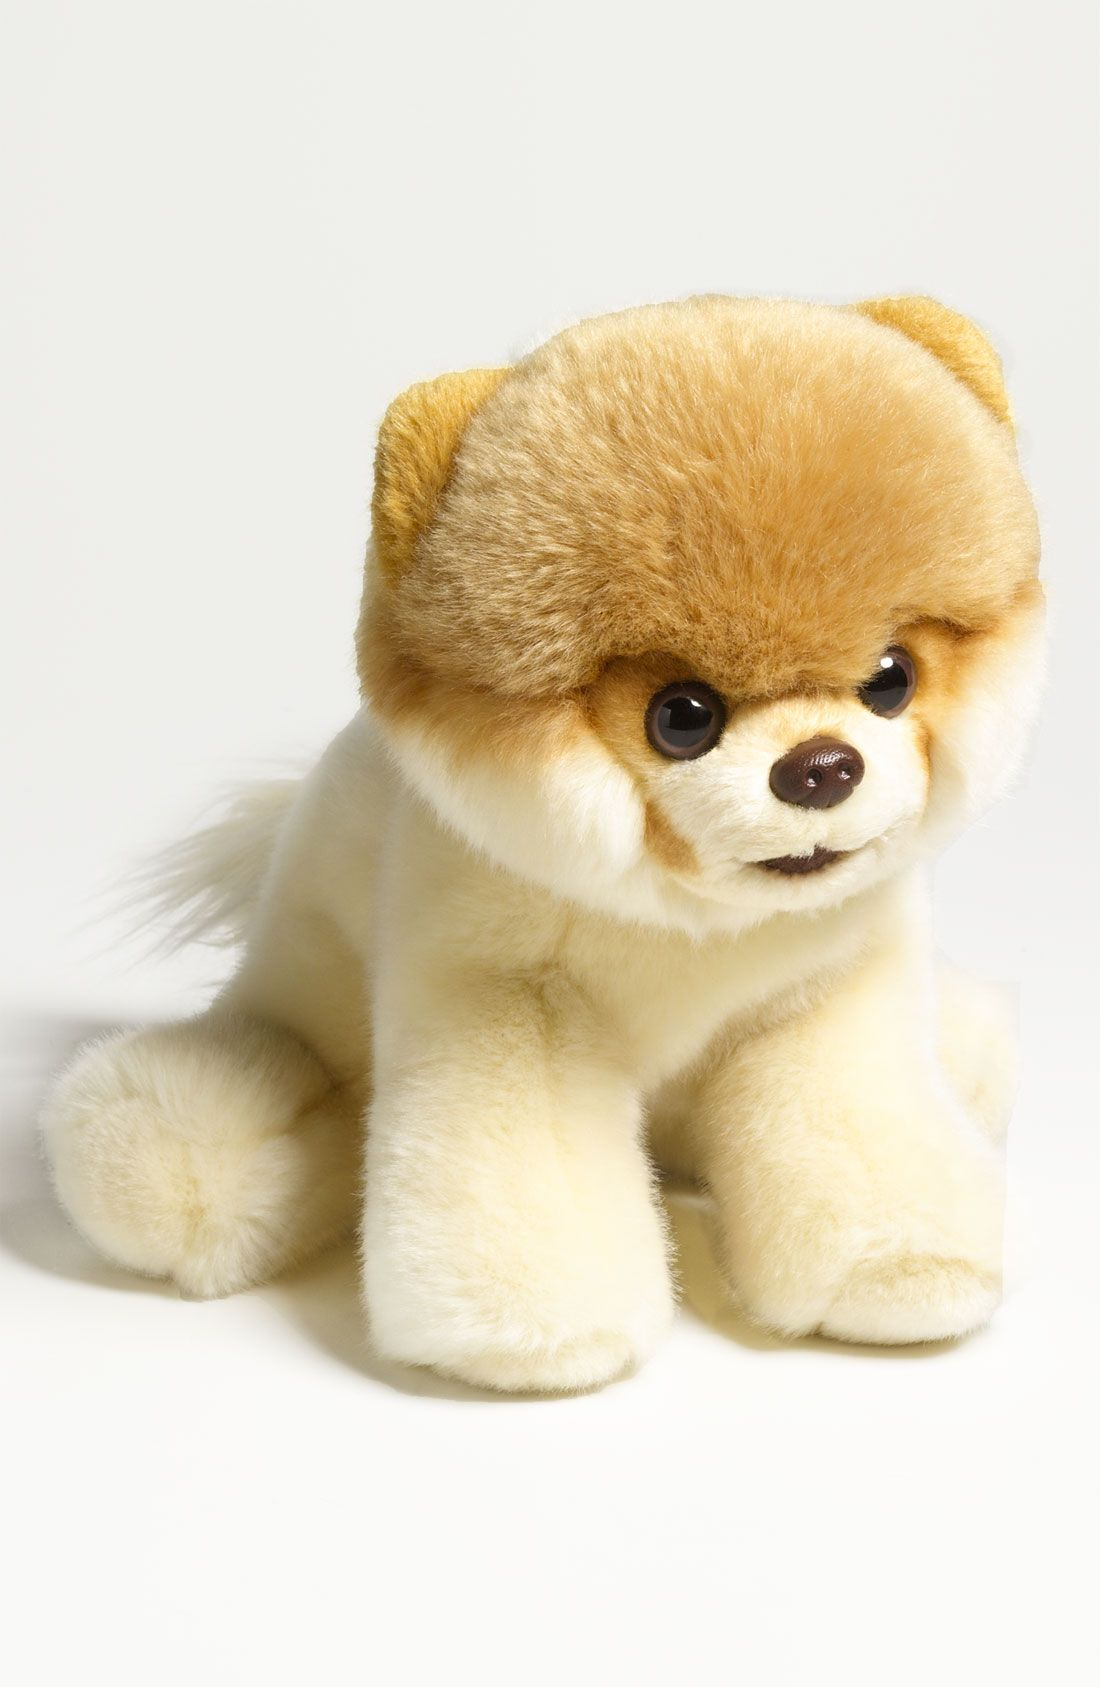 Gund Boo World S Cutest Dog Stuffed Animal Nordstrom World Cutest Dog Boo The Cutest Dog Dog Stuffed Animal